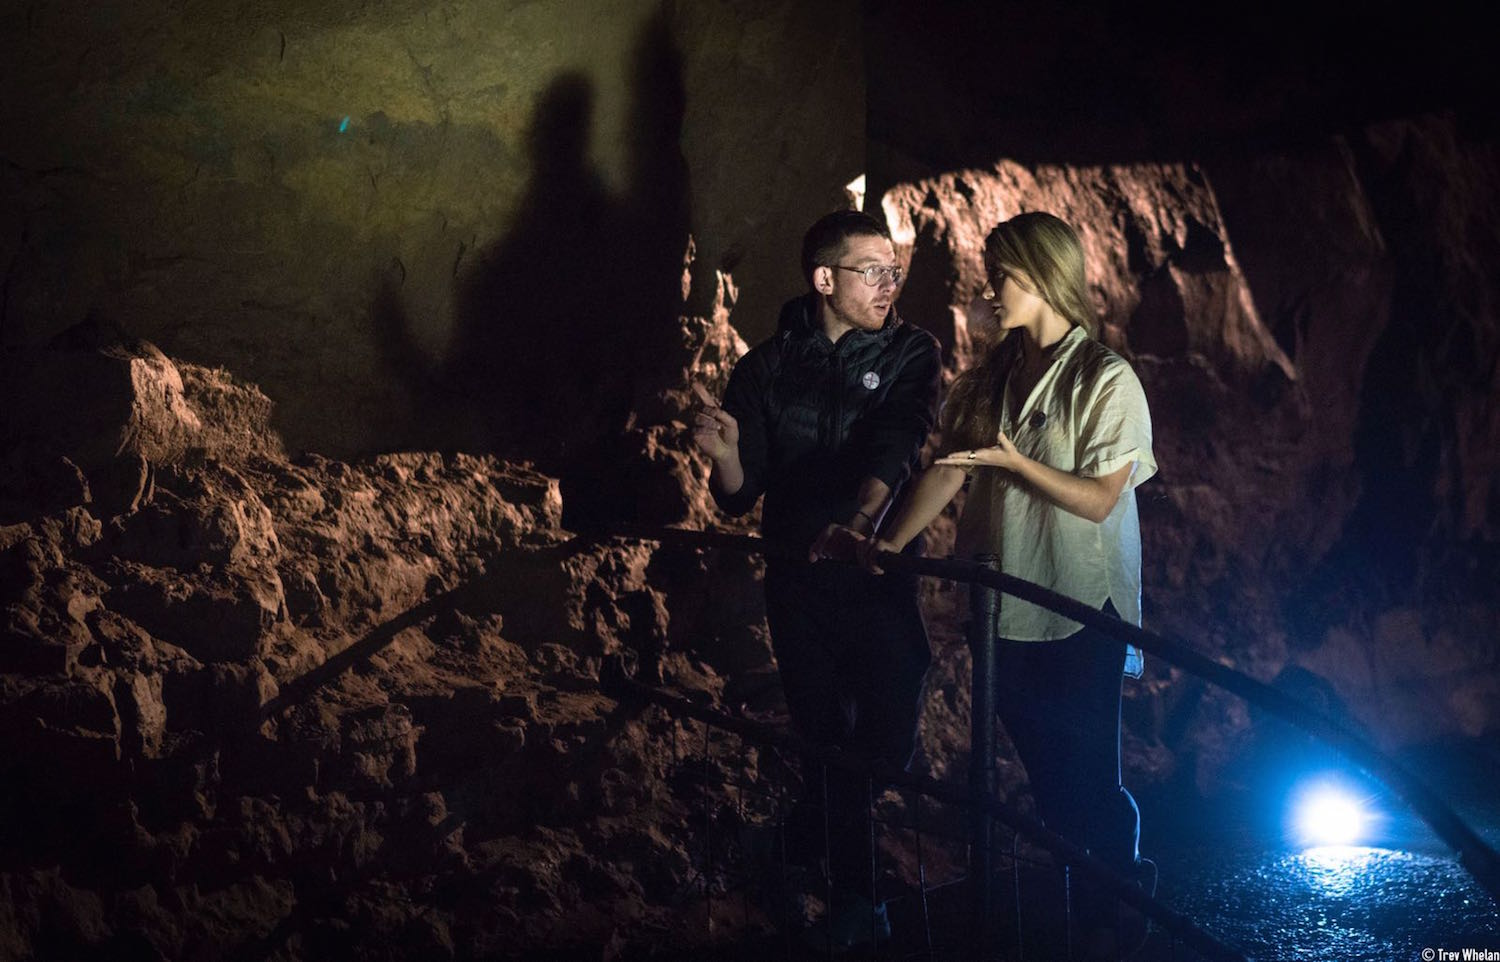 Entirely hollow aside from the dark, AlanJames Burns and Sue Rainsford discussing the work in Aillwee Caves, 2017. Photo by Trevor Whelan.